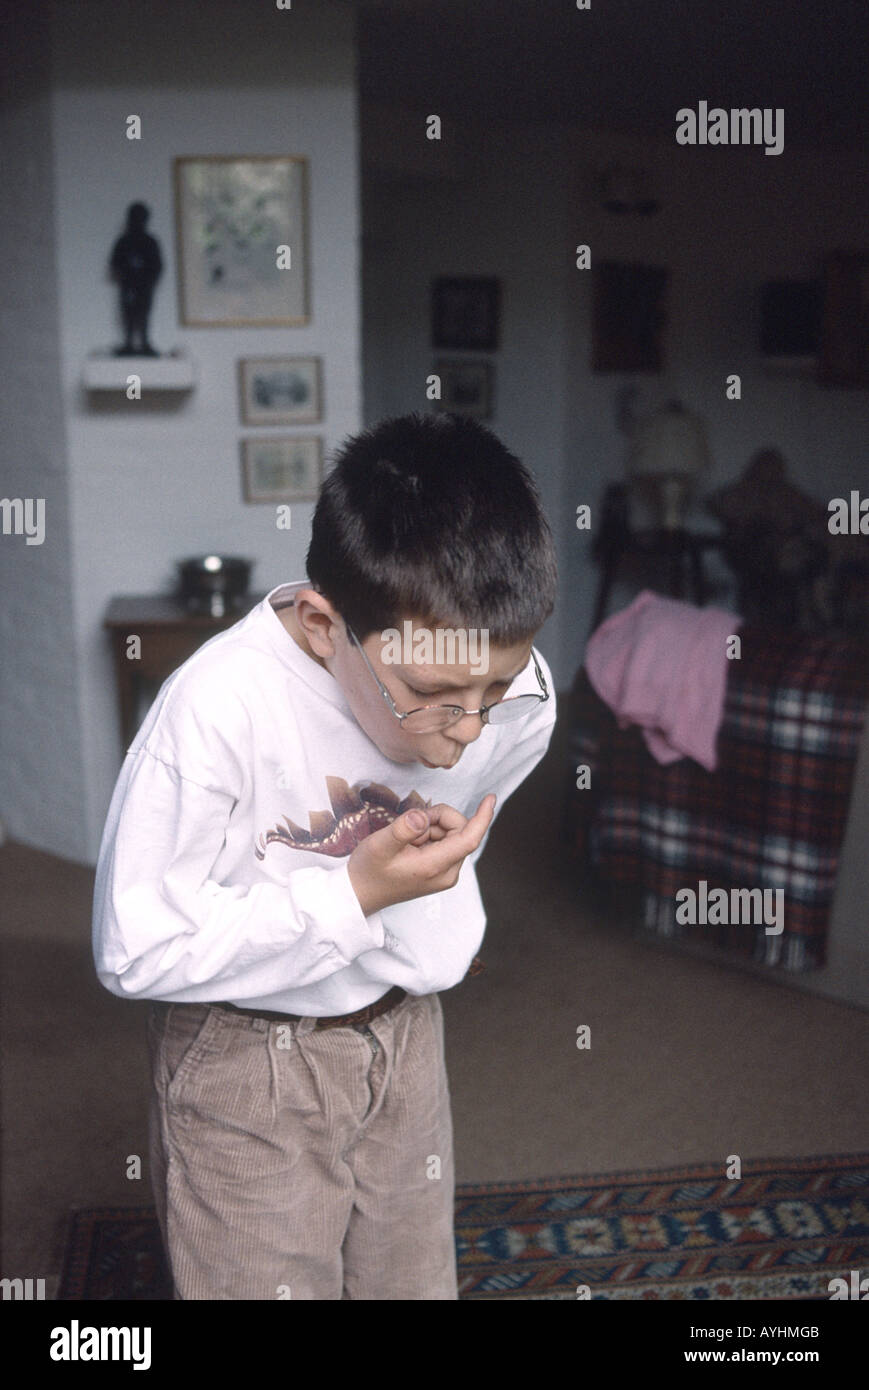 young boy choking  on a candy - Stock Image